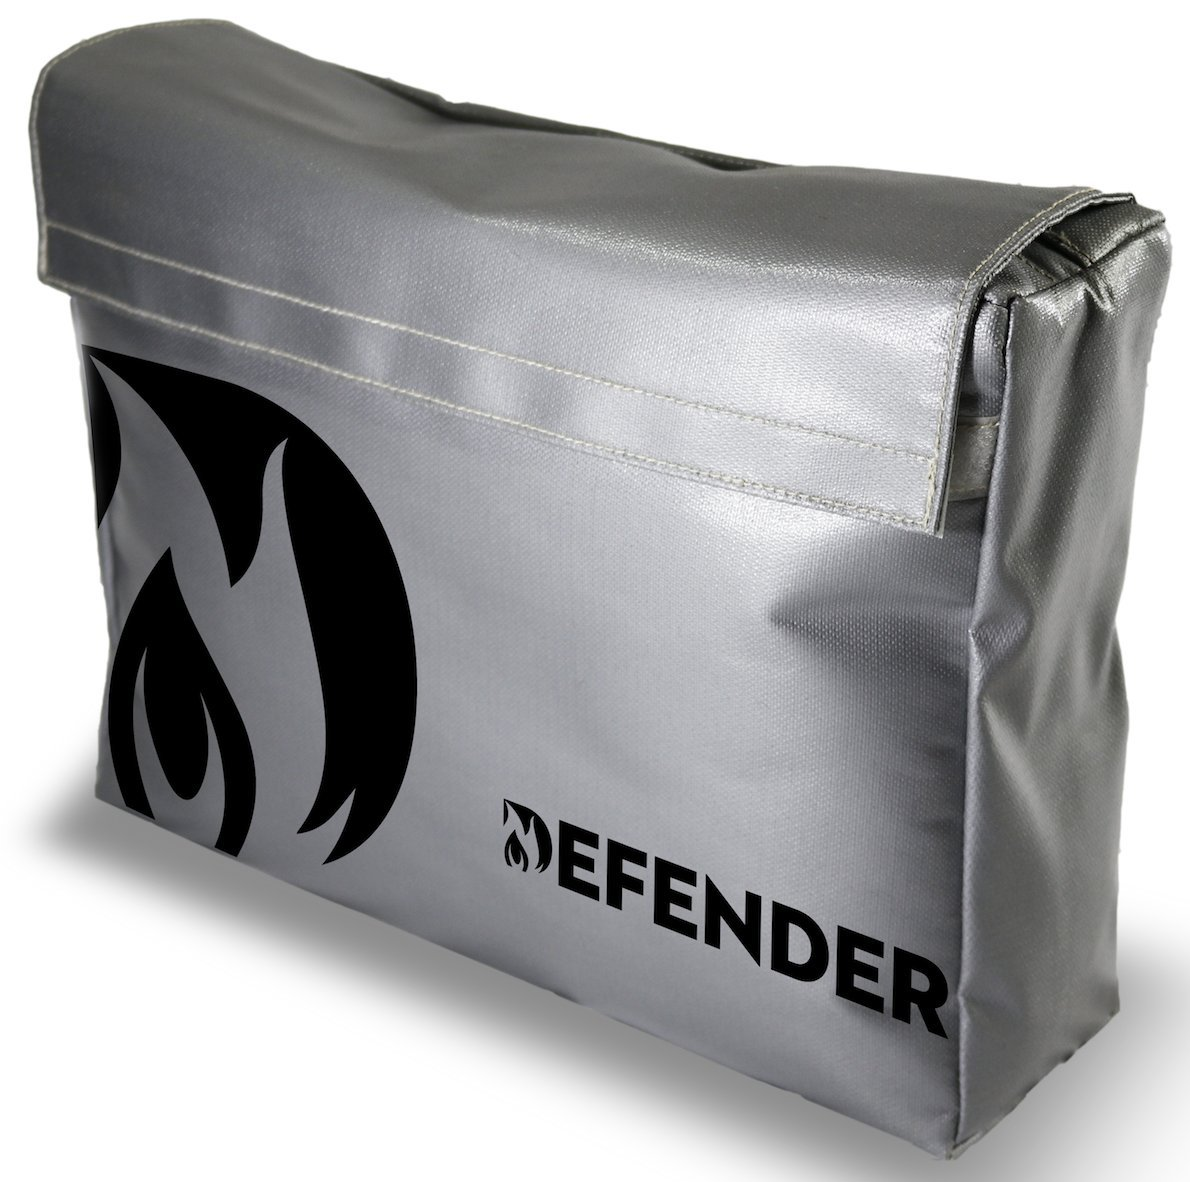 Defender Fireproof and Water Resistant Bag | Silicone Coated Fiberglass Non-Itchy | Double Closure to Keep Valuables Protected | 11x15x4 Size for Legal Documents, Currency, Jewelry, Etc.